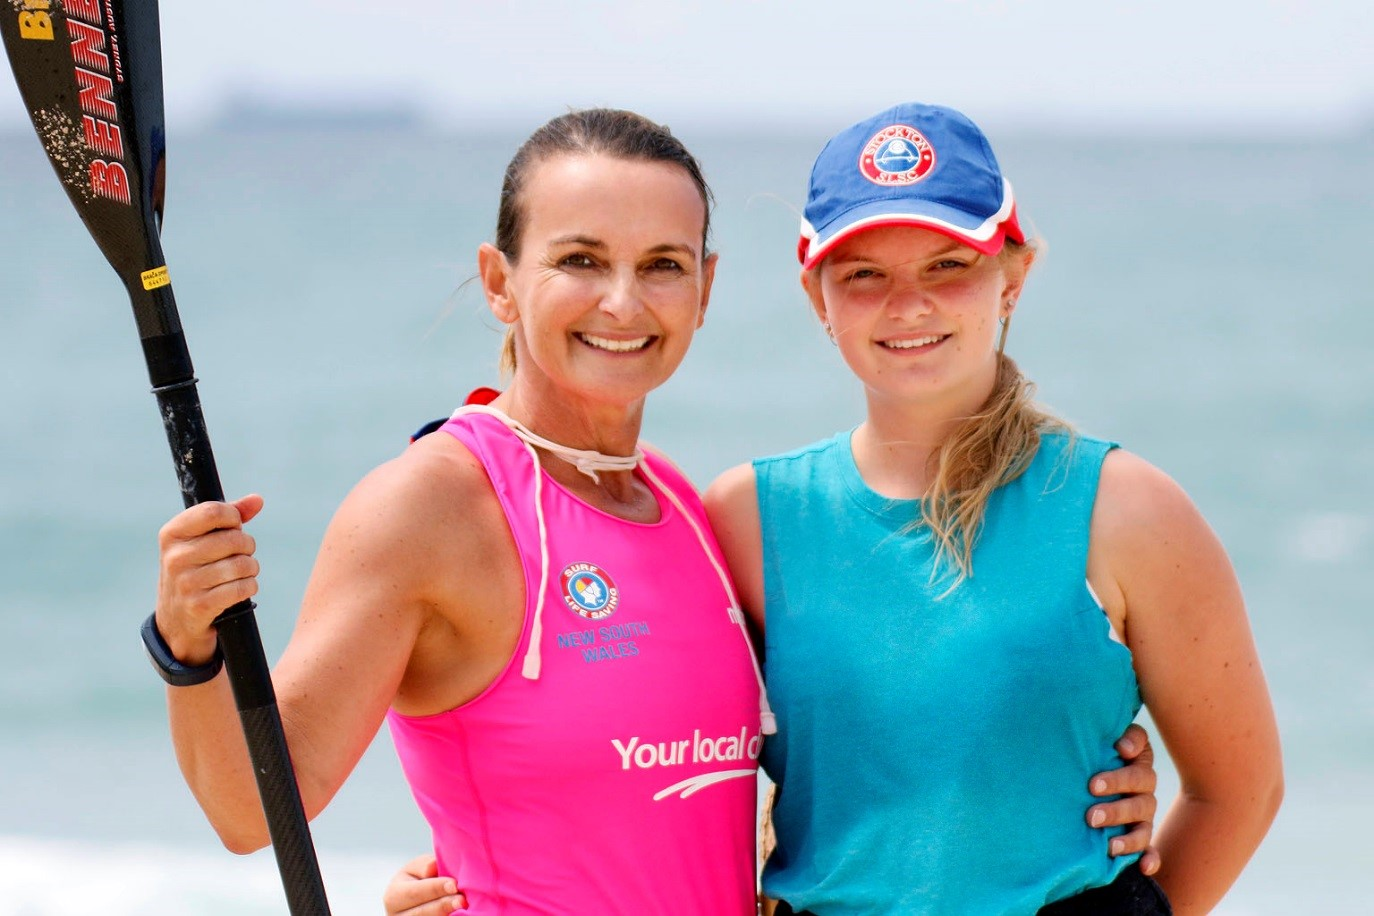 Surf Life Saving NSW volunteer Willow Forsyth, with her daughter